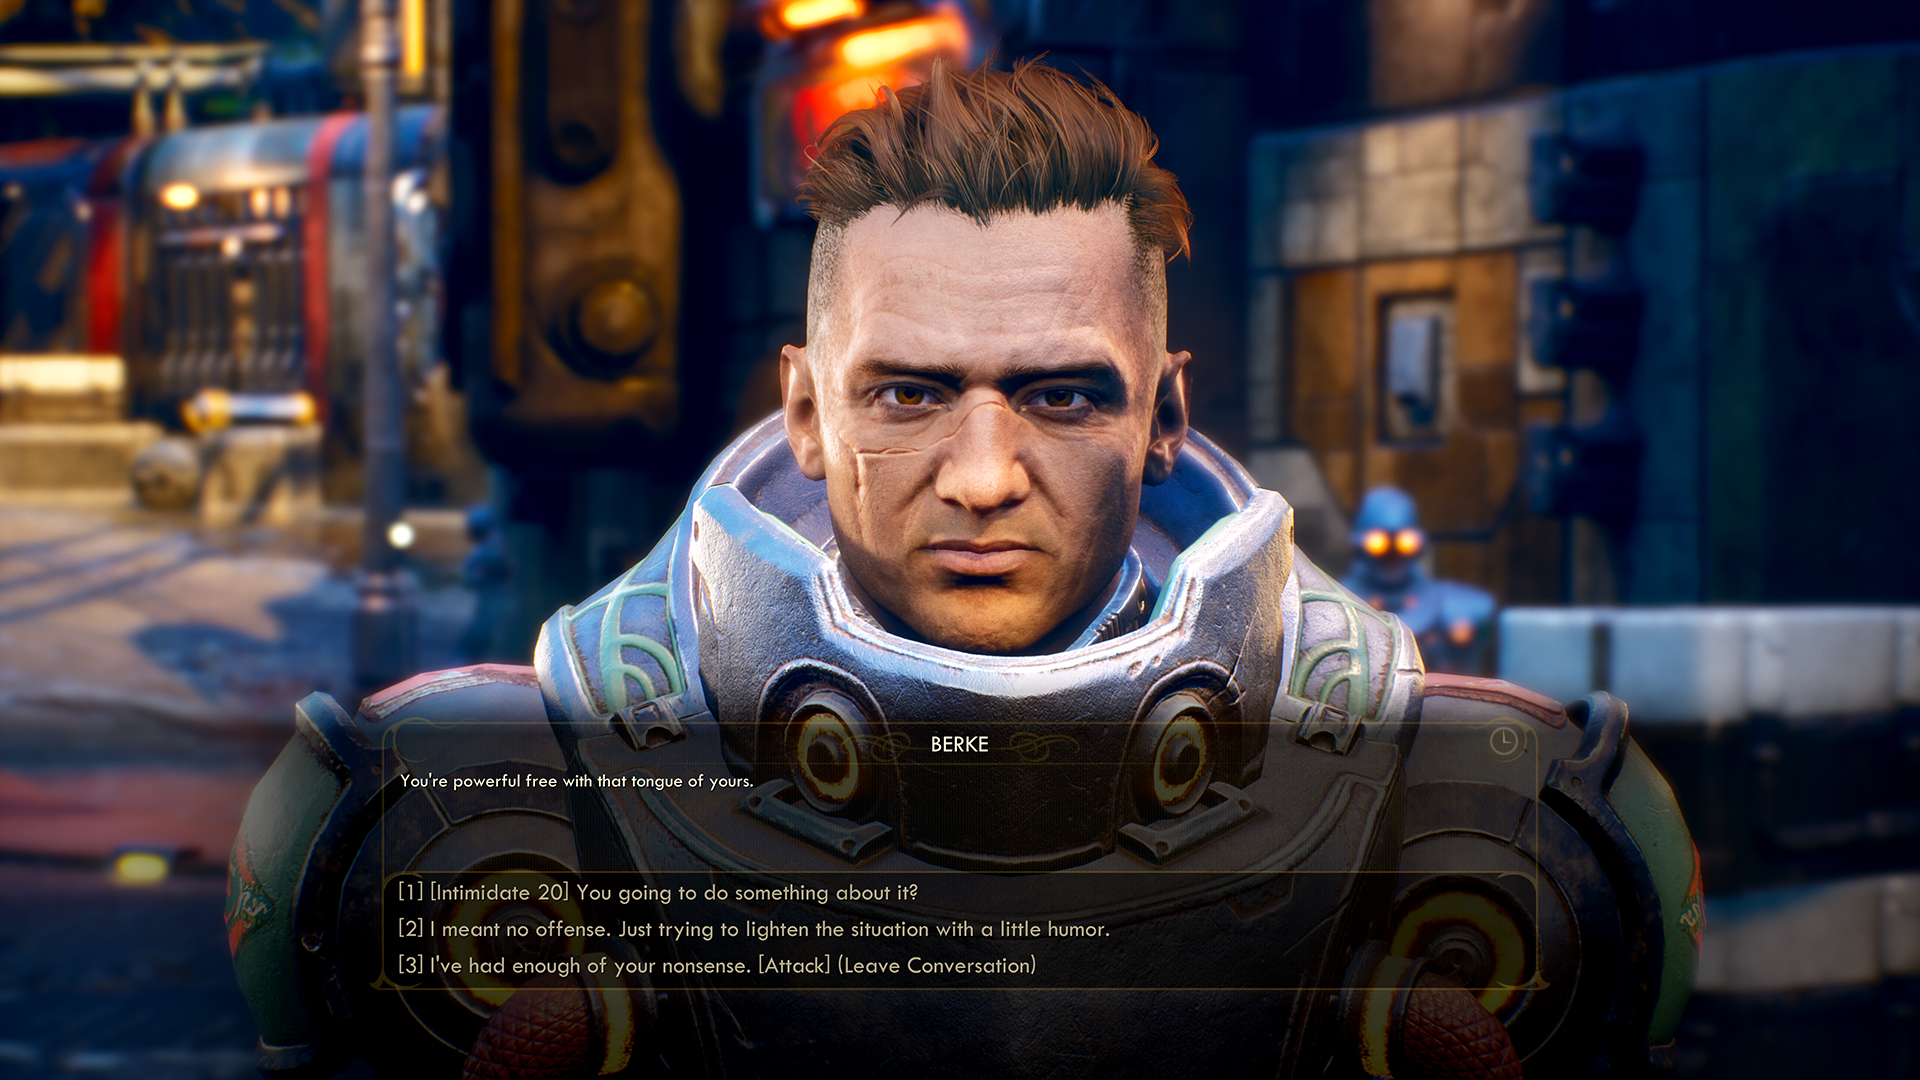 The various dialogue options allow for plenty of opportunity to role-play.